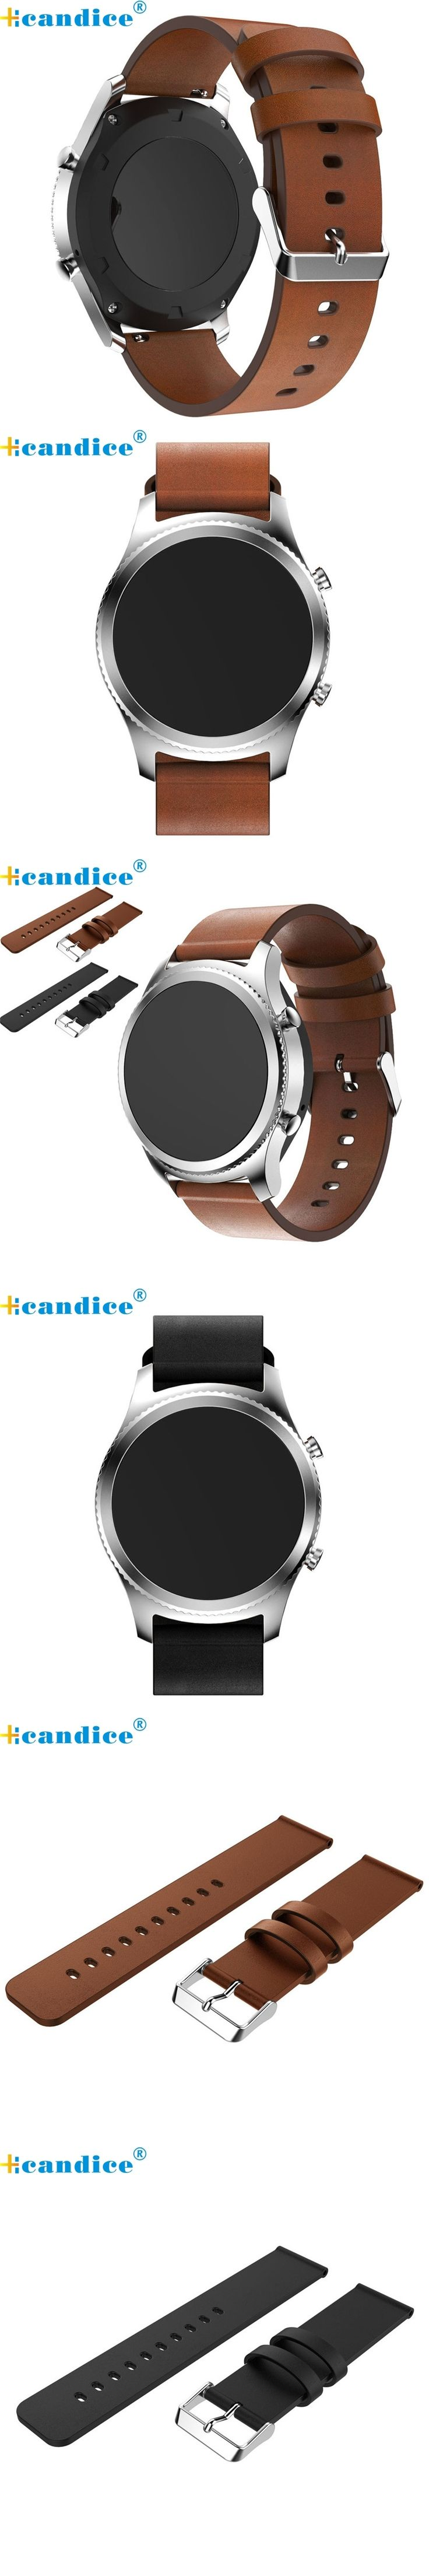 2017 Fashion Low Price Hot Sale OTOKY Replacement Leather Watch Bracelet Strap Band For Samsung Gear S3 Frontier wholesale No29